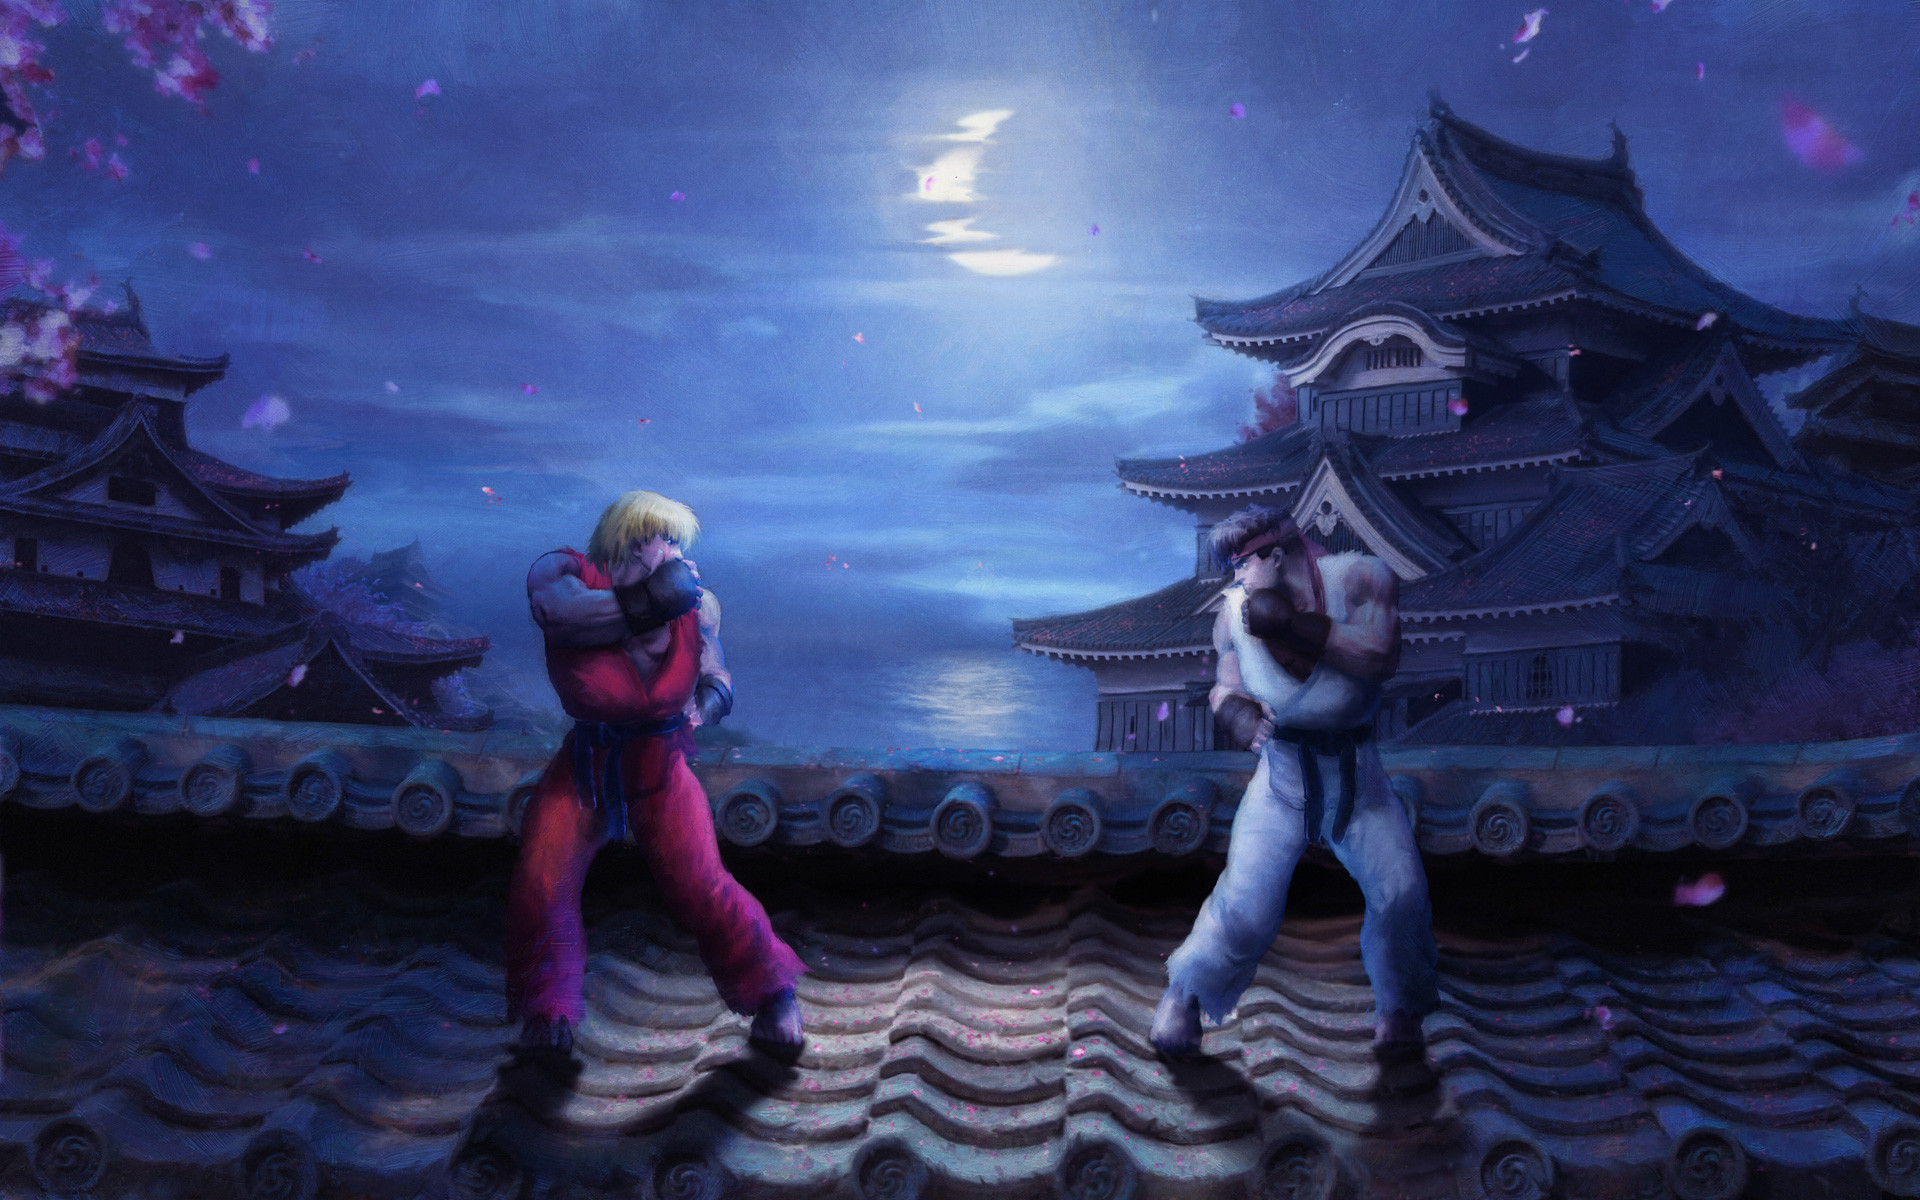 Street fighter wallpapers 67 images - Street fighter 2 wallpaper hd ...